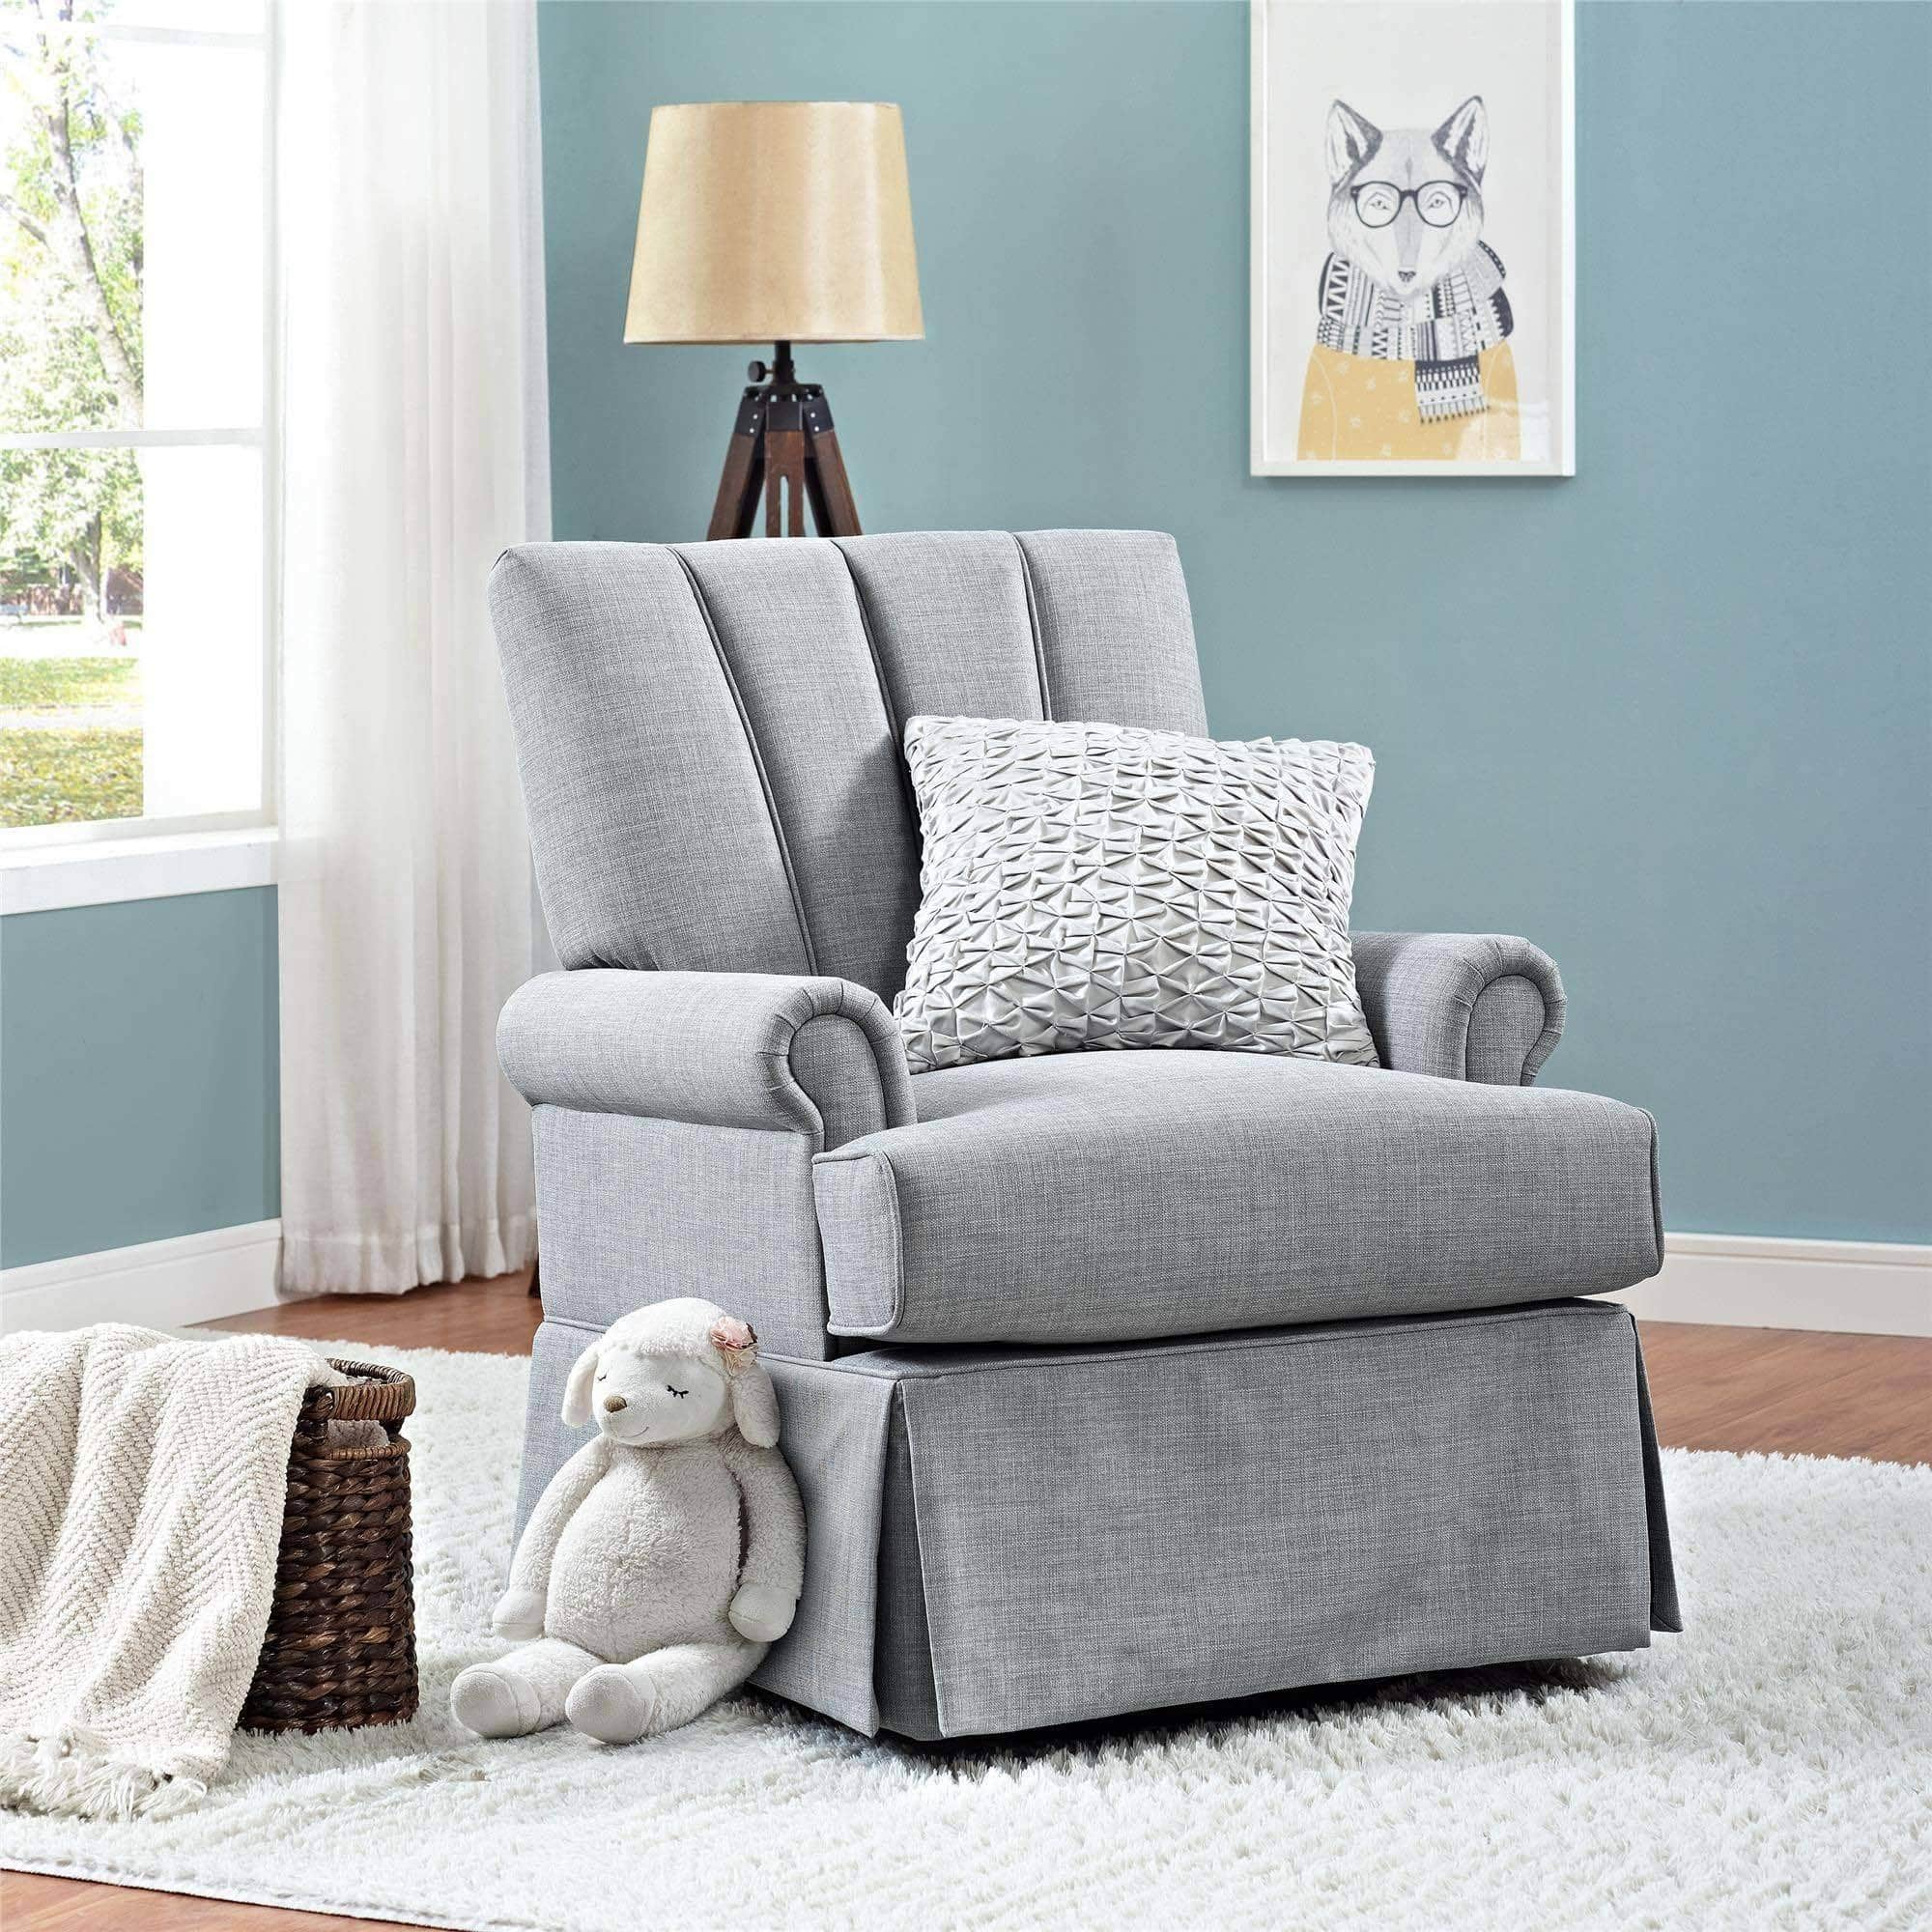 Better Homes and Gardens Channel Back Swivel Glider in Dove Gray $178.36 (after pick-up discount) + FREE S/H